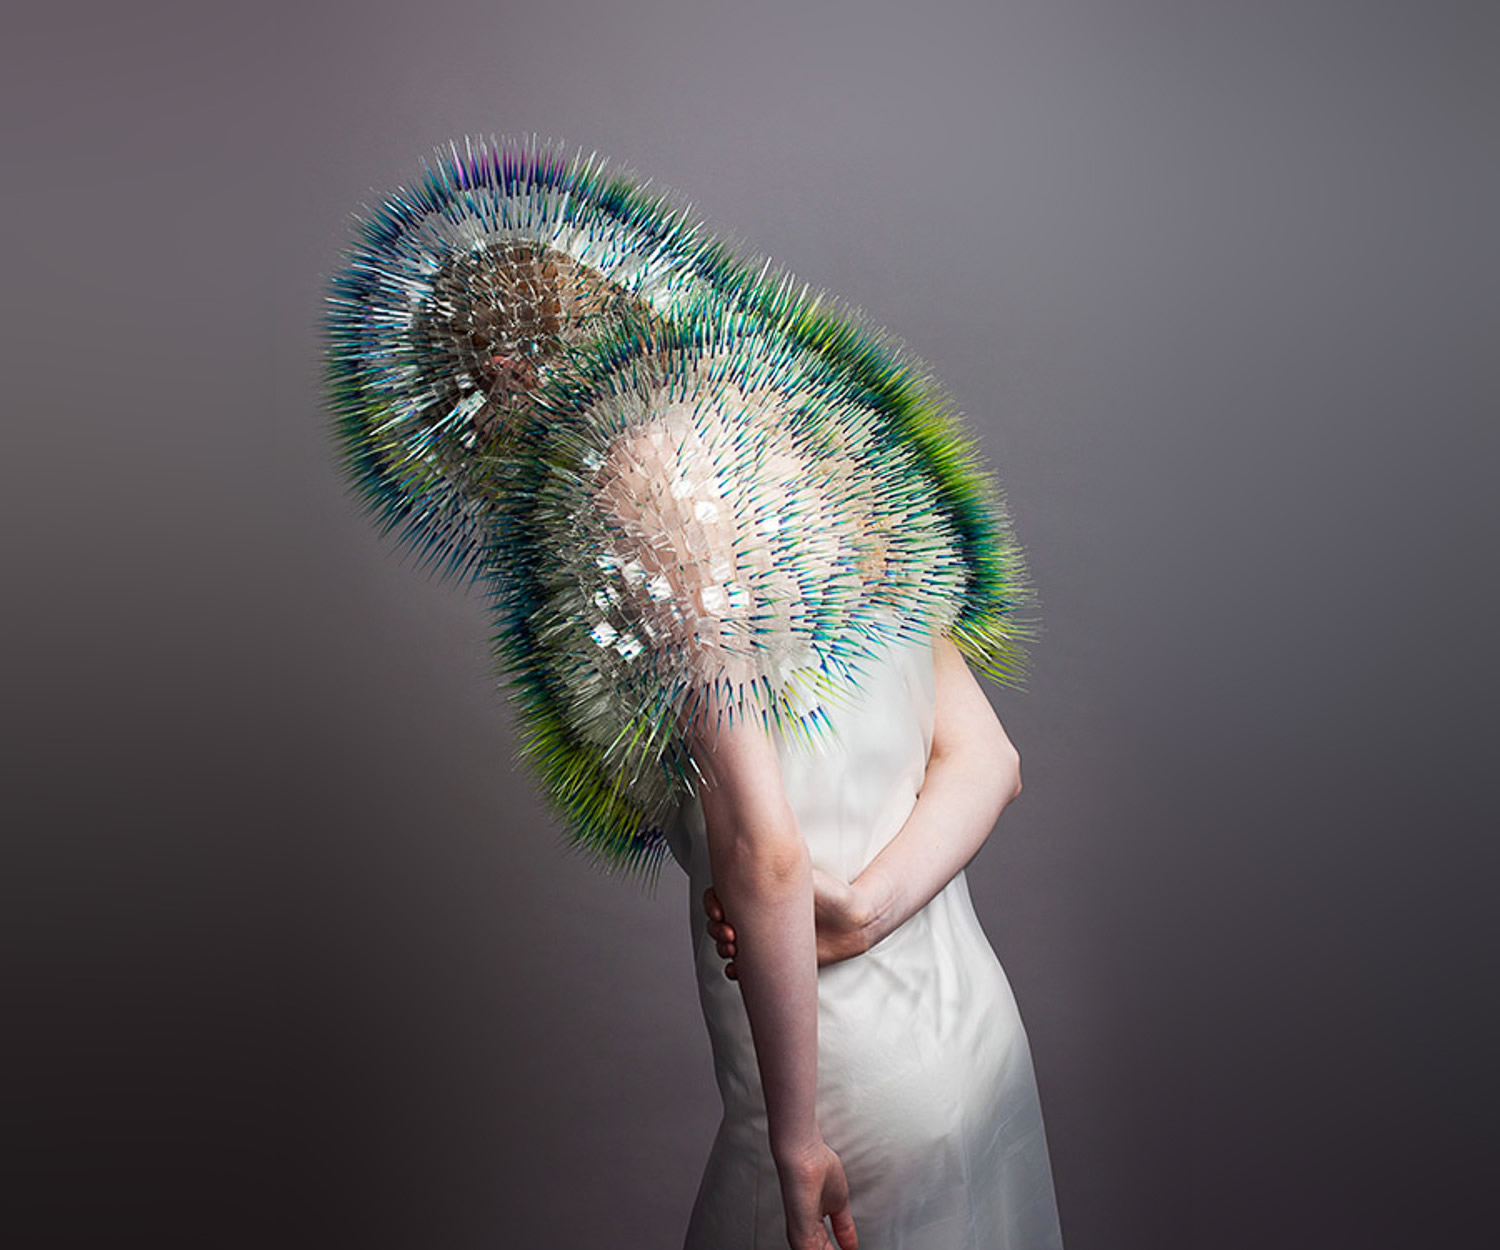 green hat and shoulder garment by maiko takedo